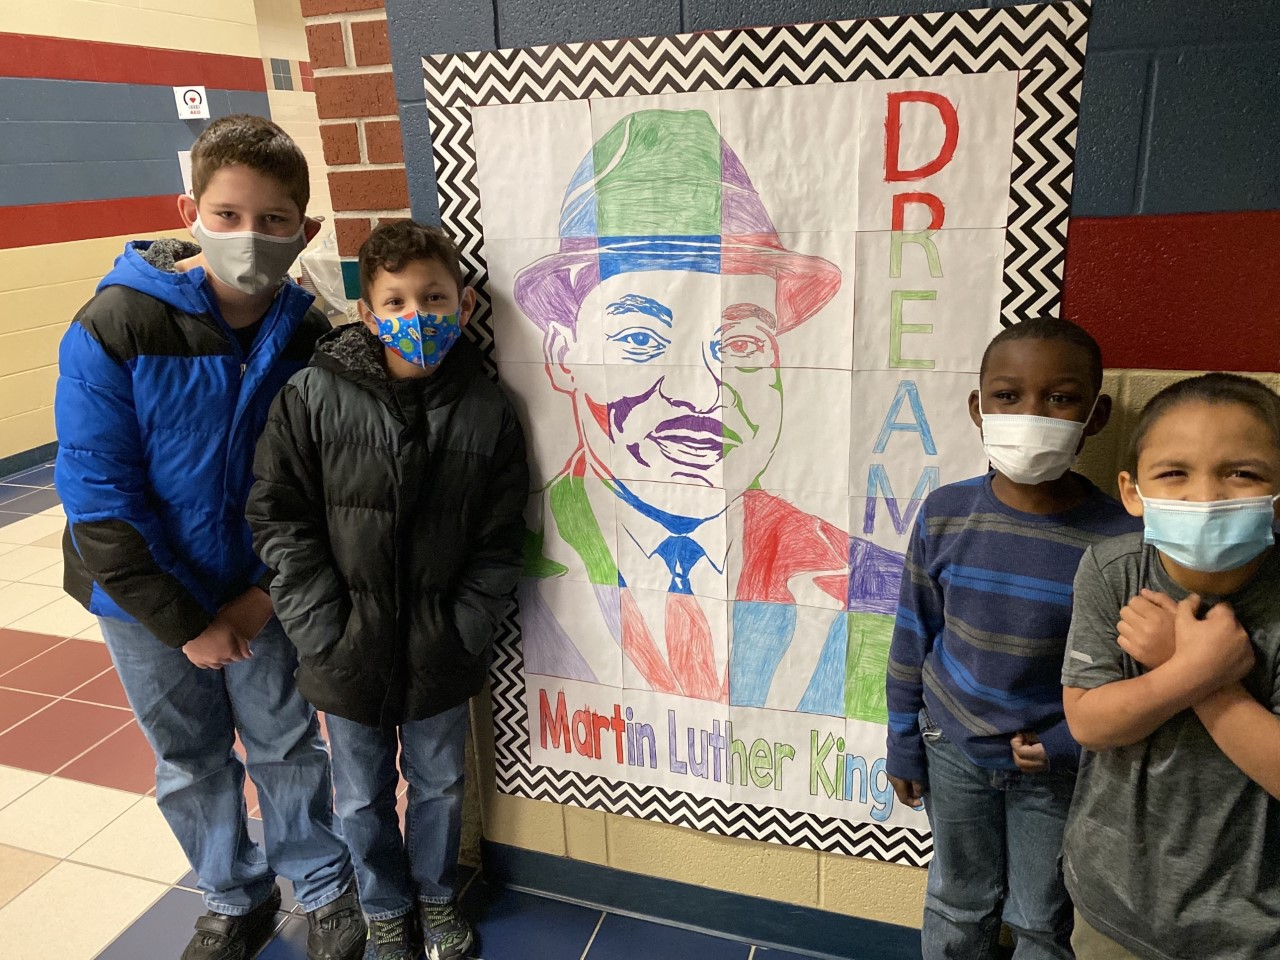 Students stand in front of MLK artwork